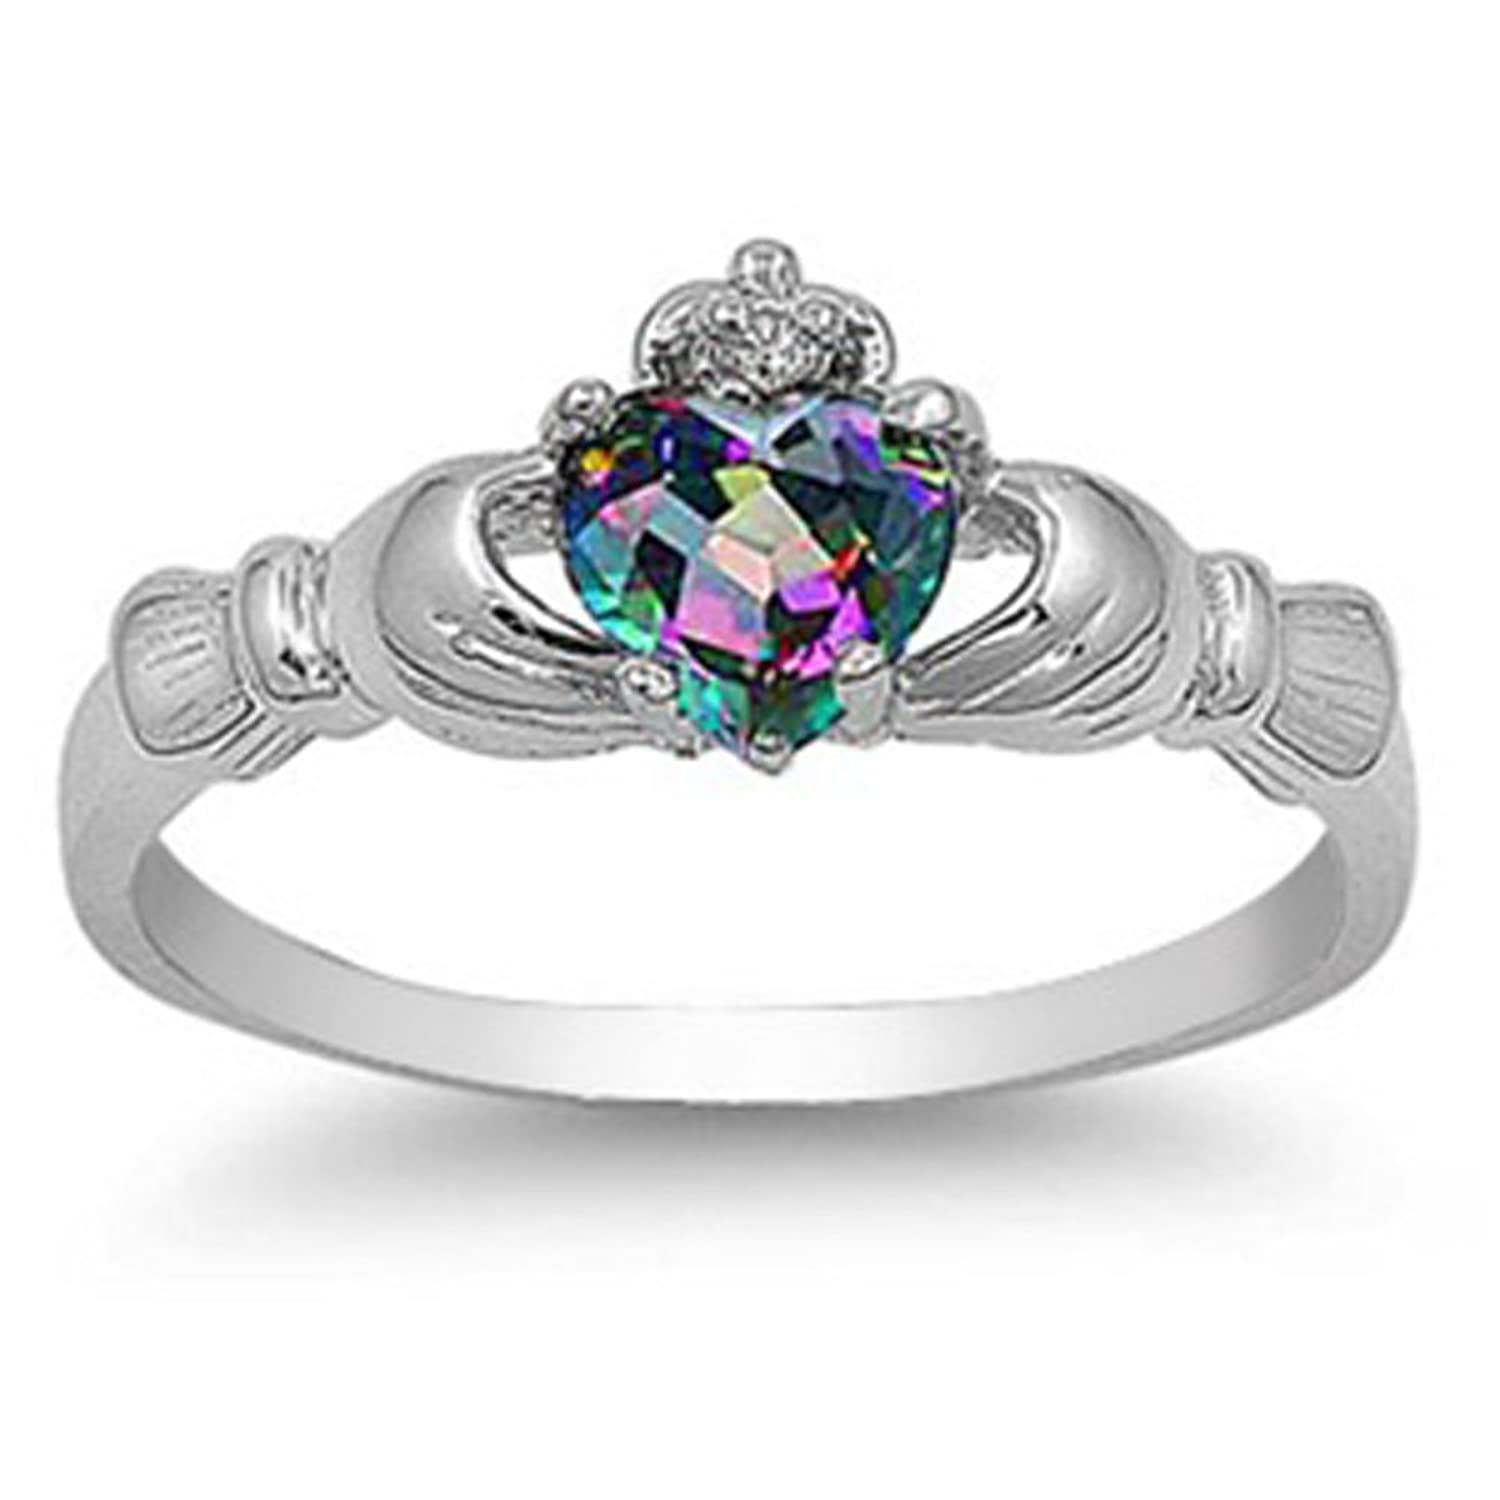 ring jewelry birthstone rings rainbow wedding bamos products october opal